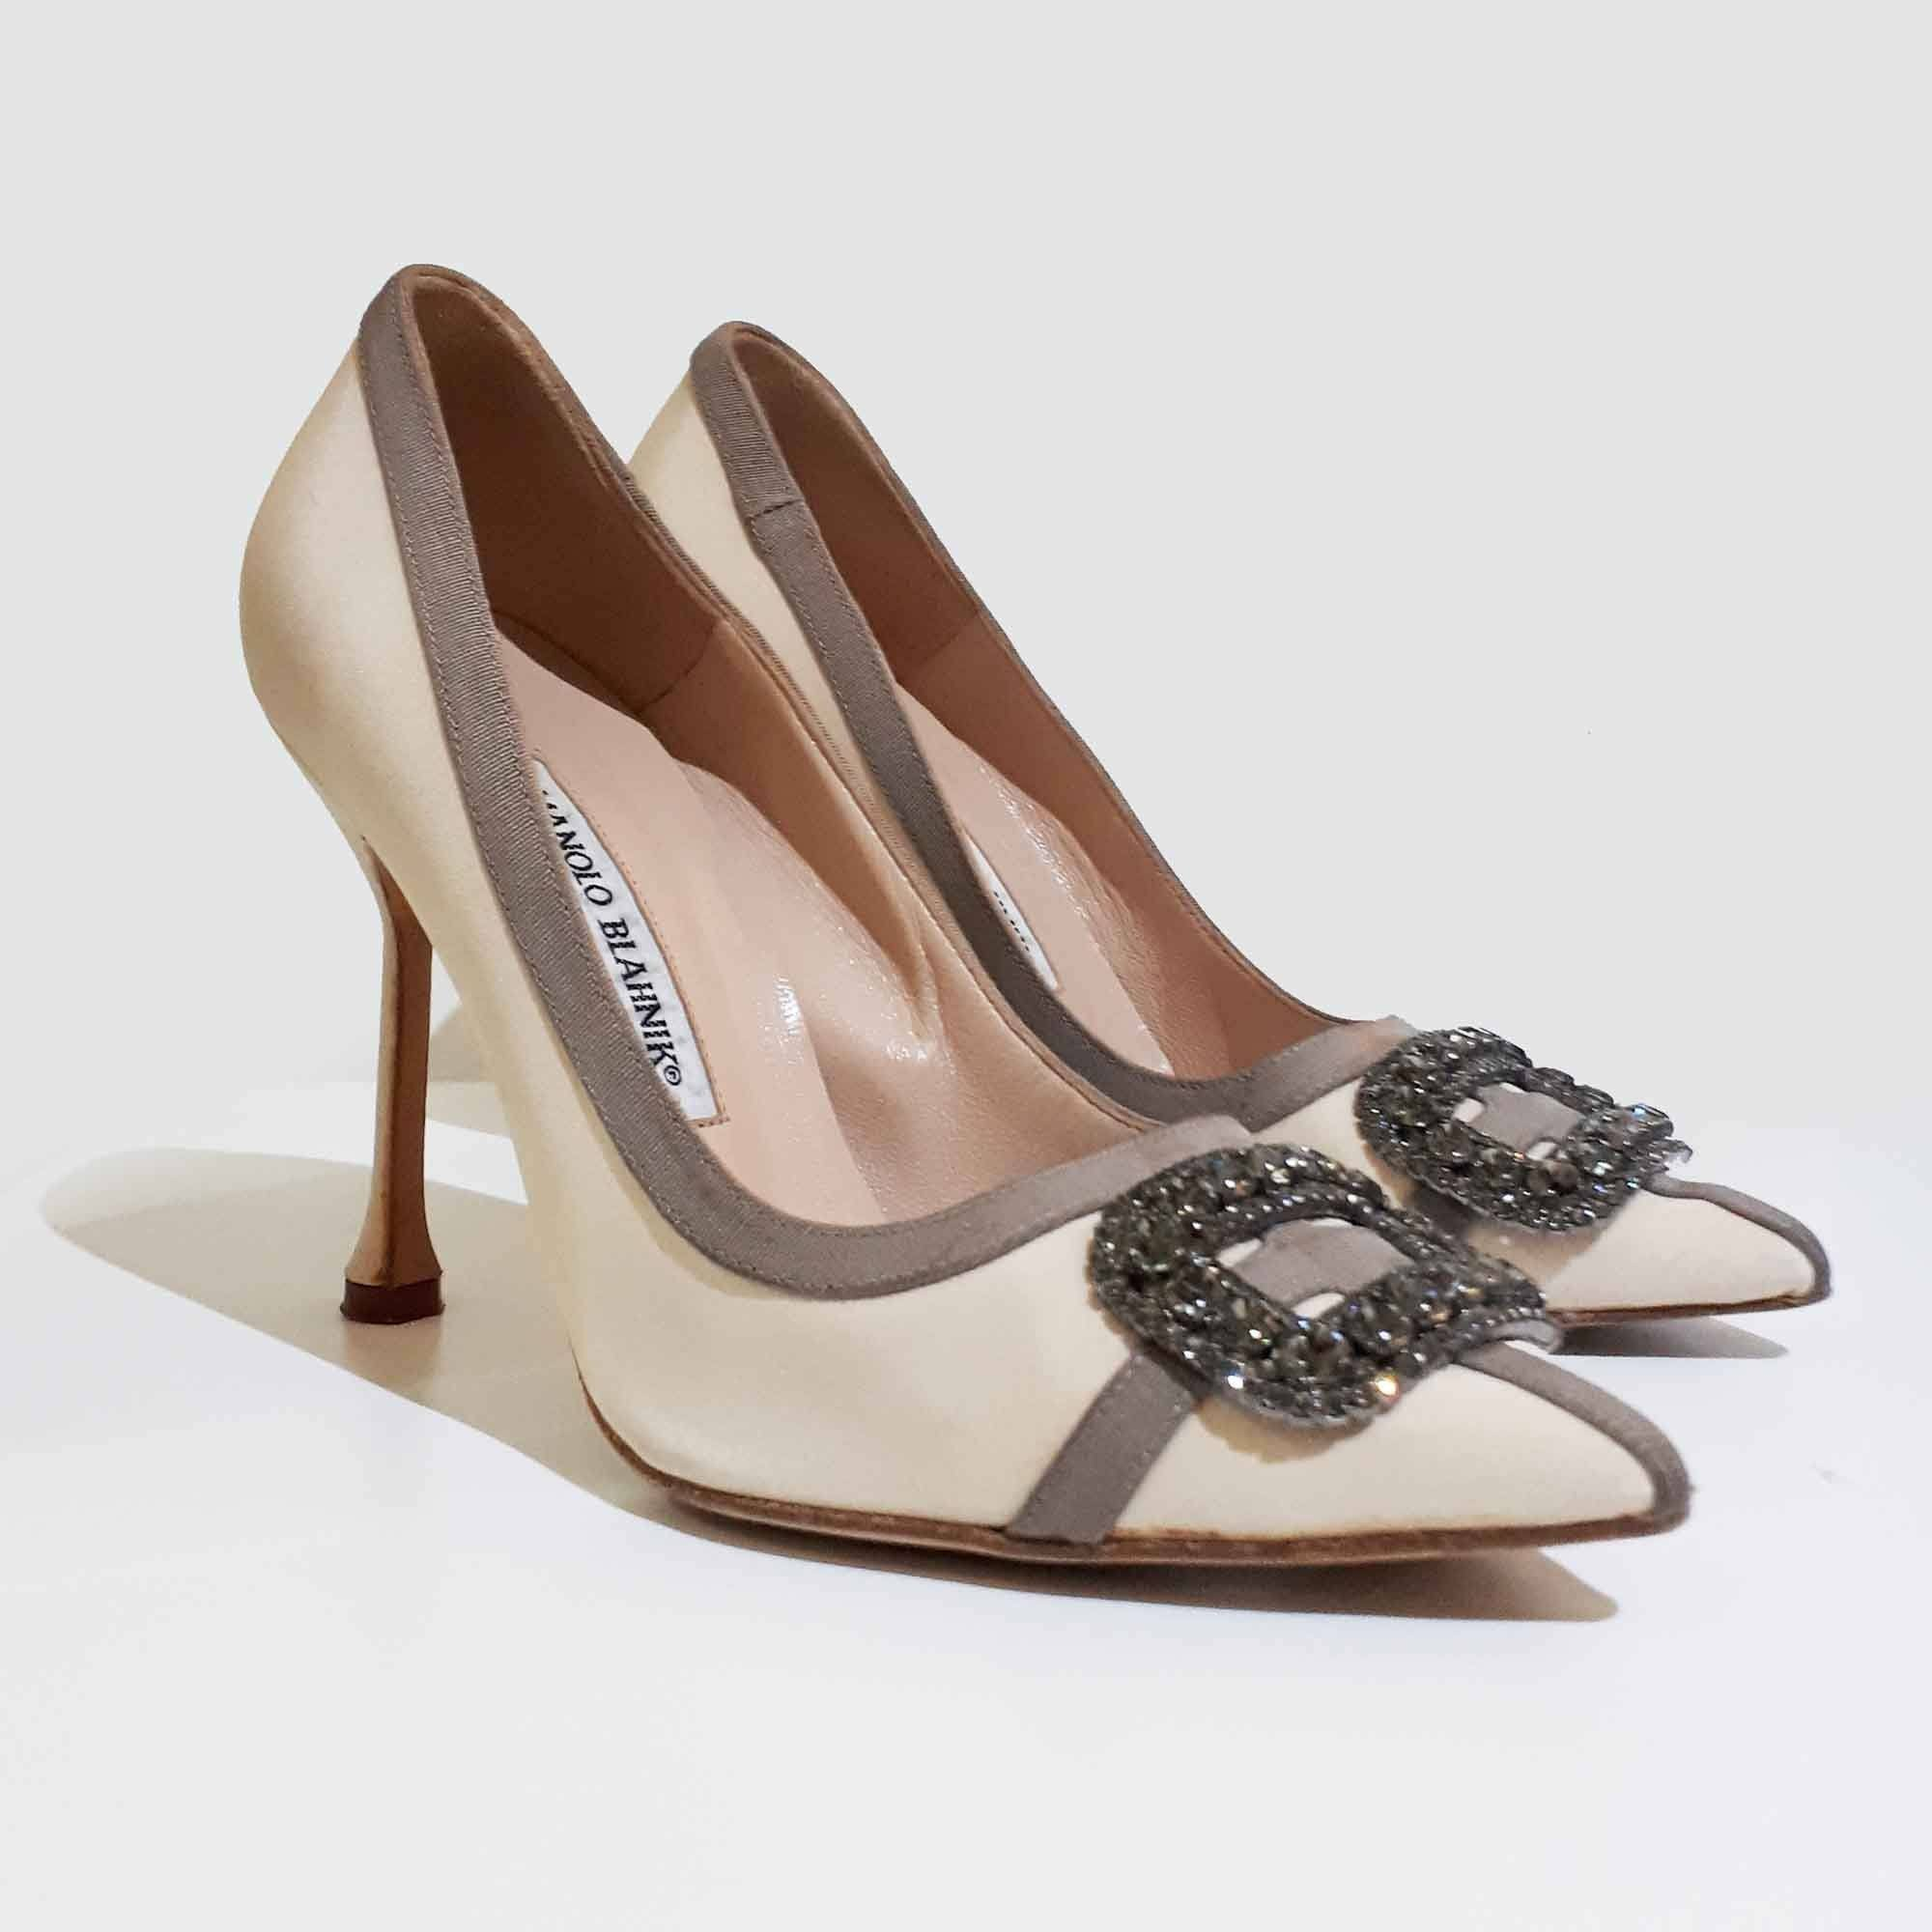 Manolo Blahnik Crystal Embellished Beige Satin Pumps